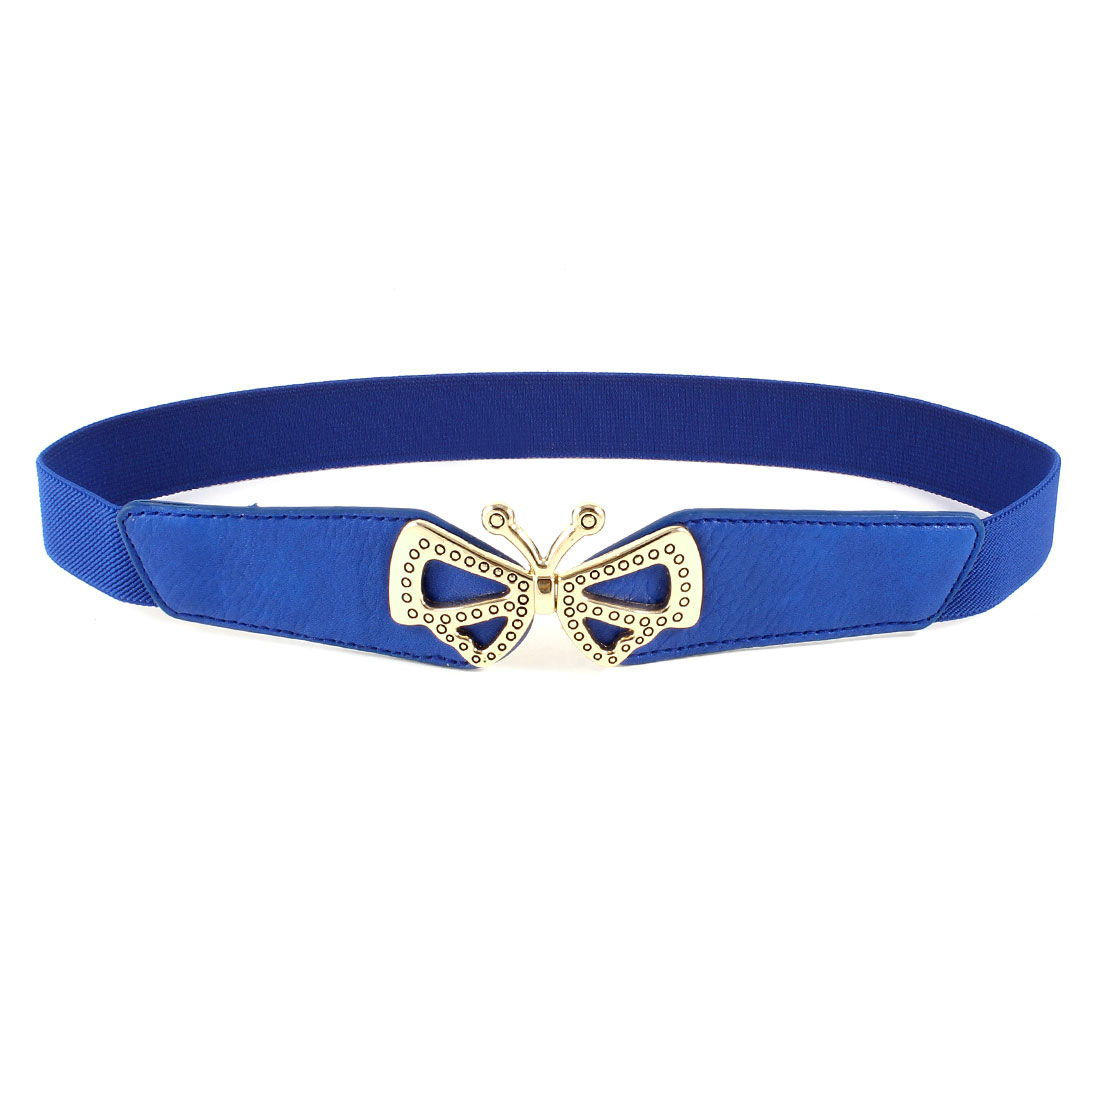 Ladies Butterfly Shaped Metal Interlocking Buckle Stretchy Waist Belt Blue